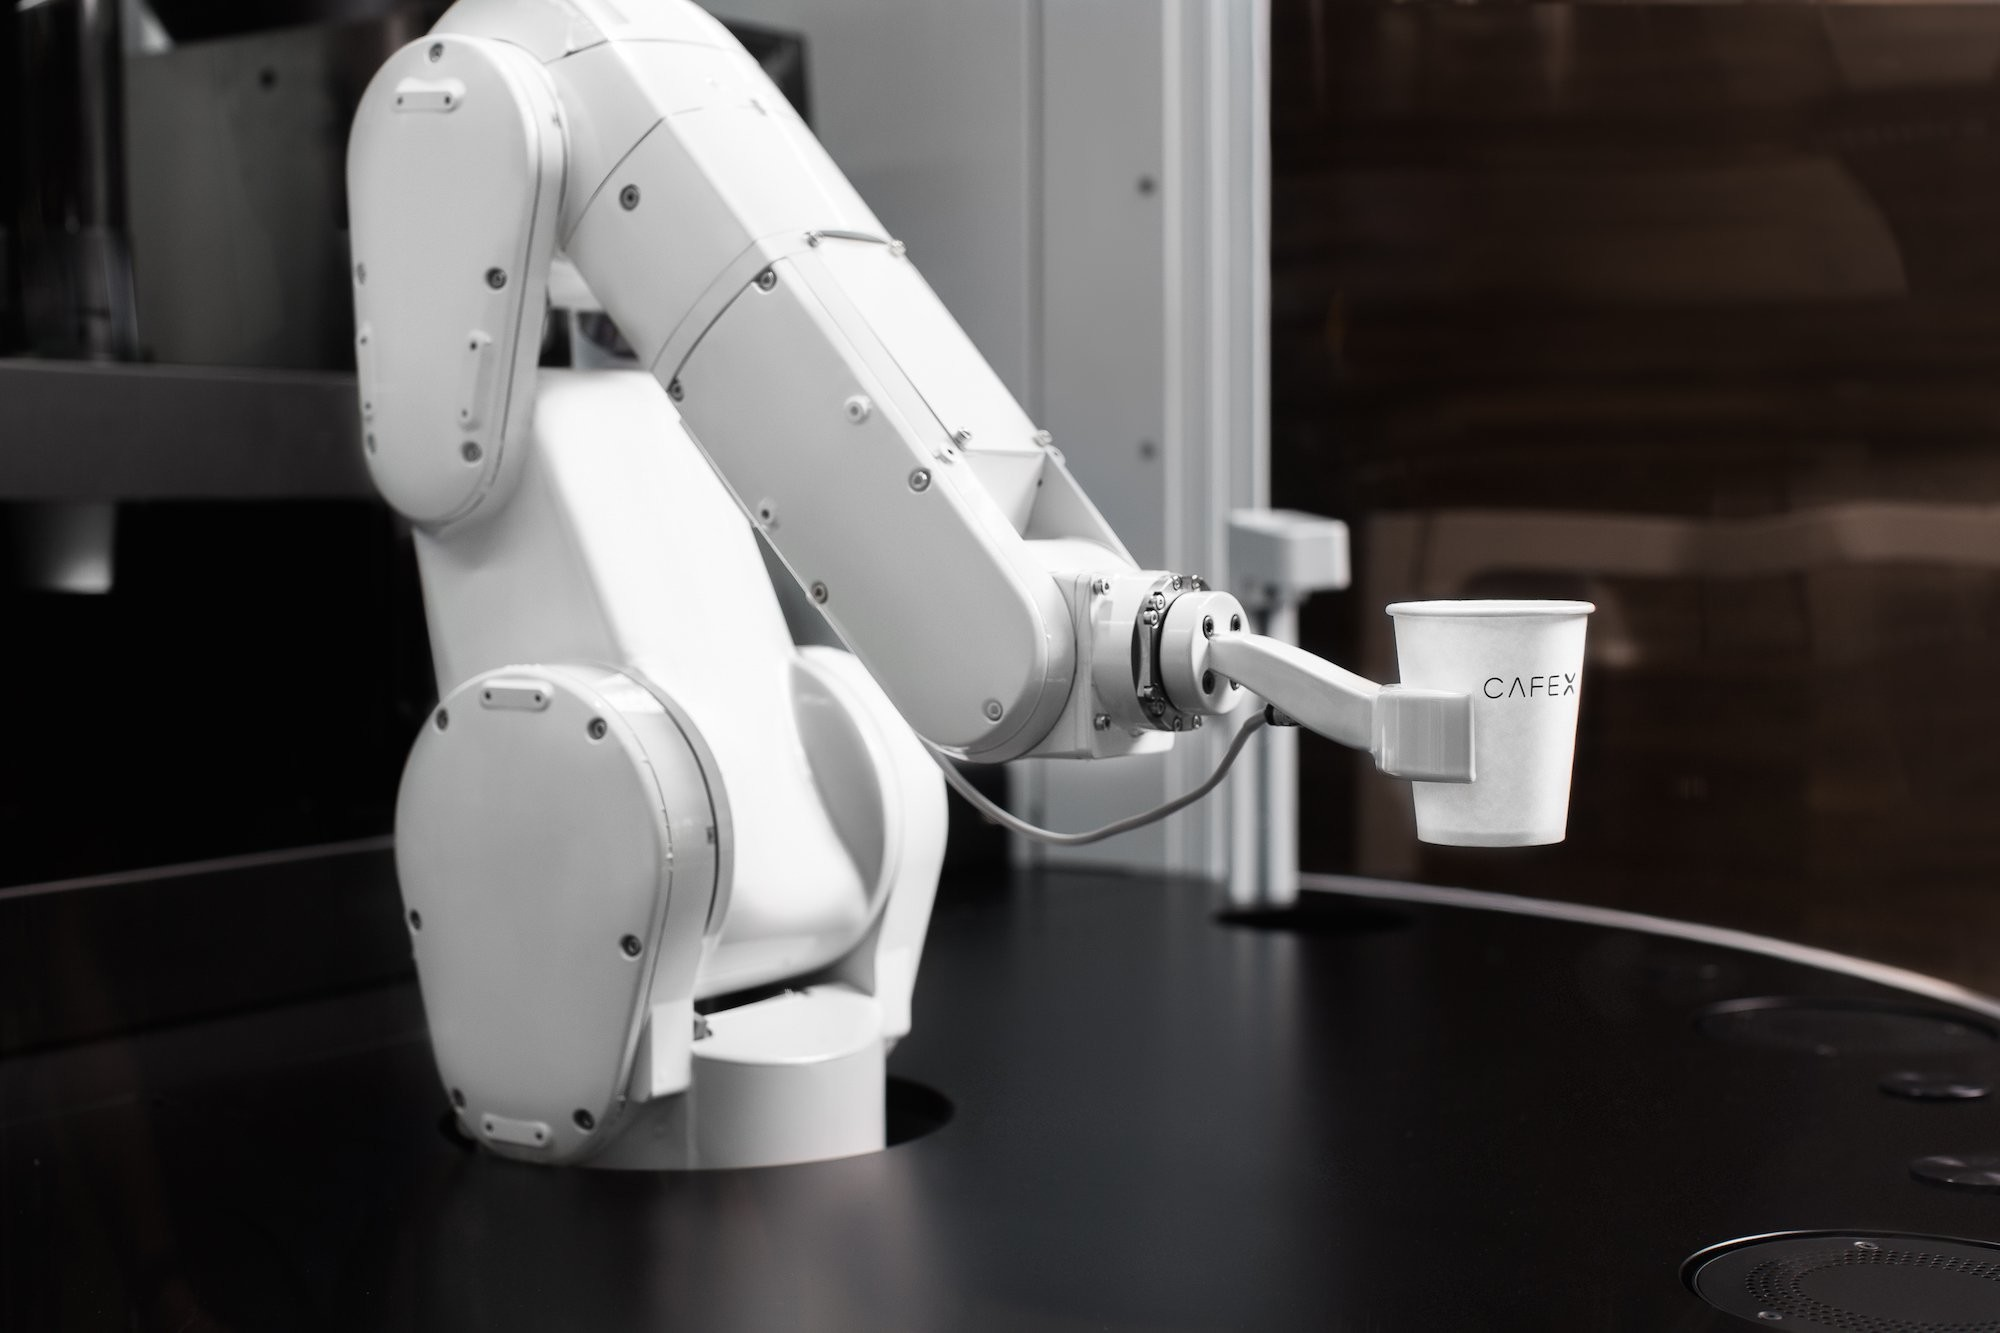 A robotic arm handles a cup of coffee at automation-powered coffee kiosk Café X in San Francisco, California.